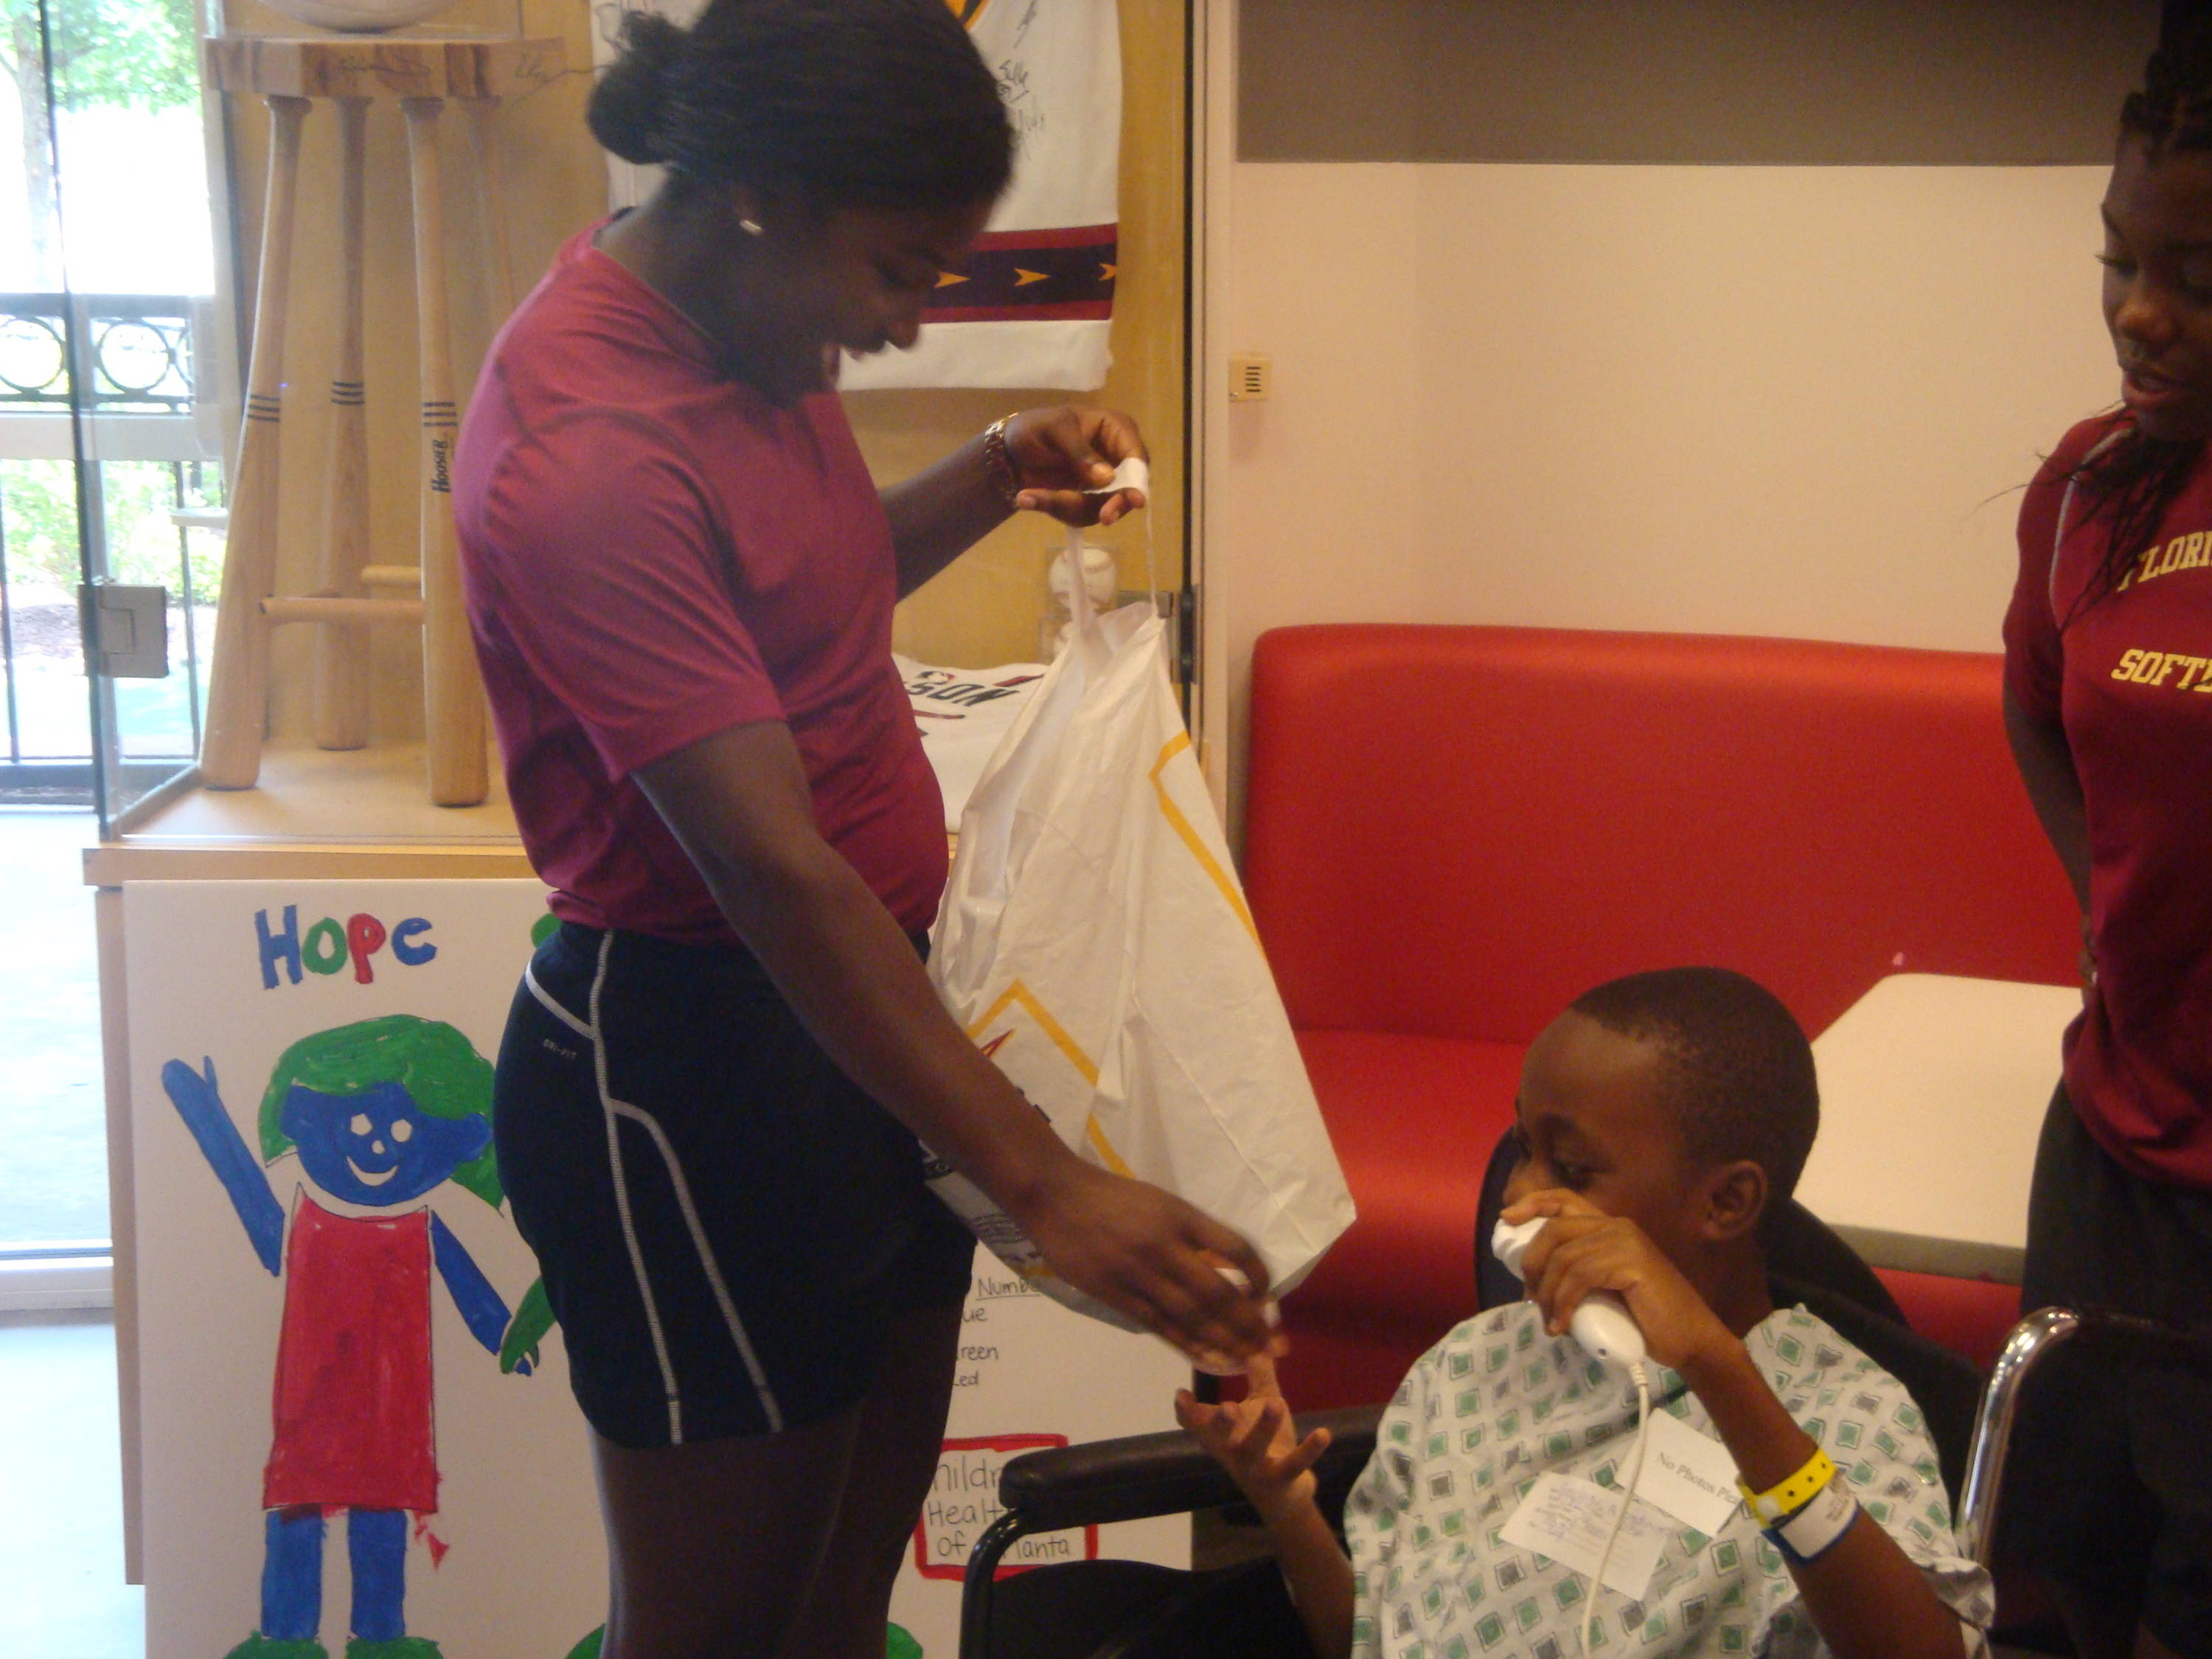 Morgan Bullock gives Emanuel some gifts from the FSU softball team